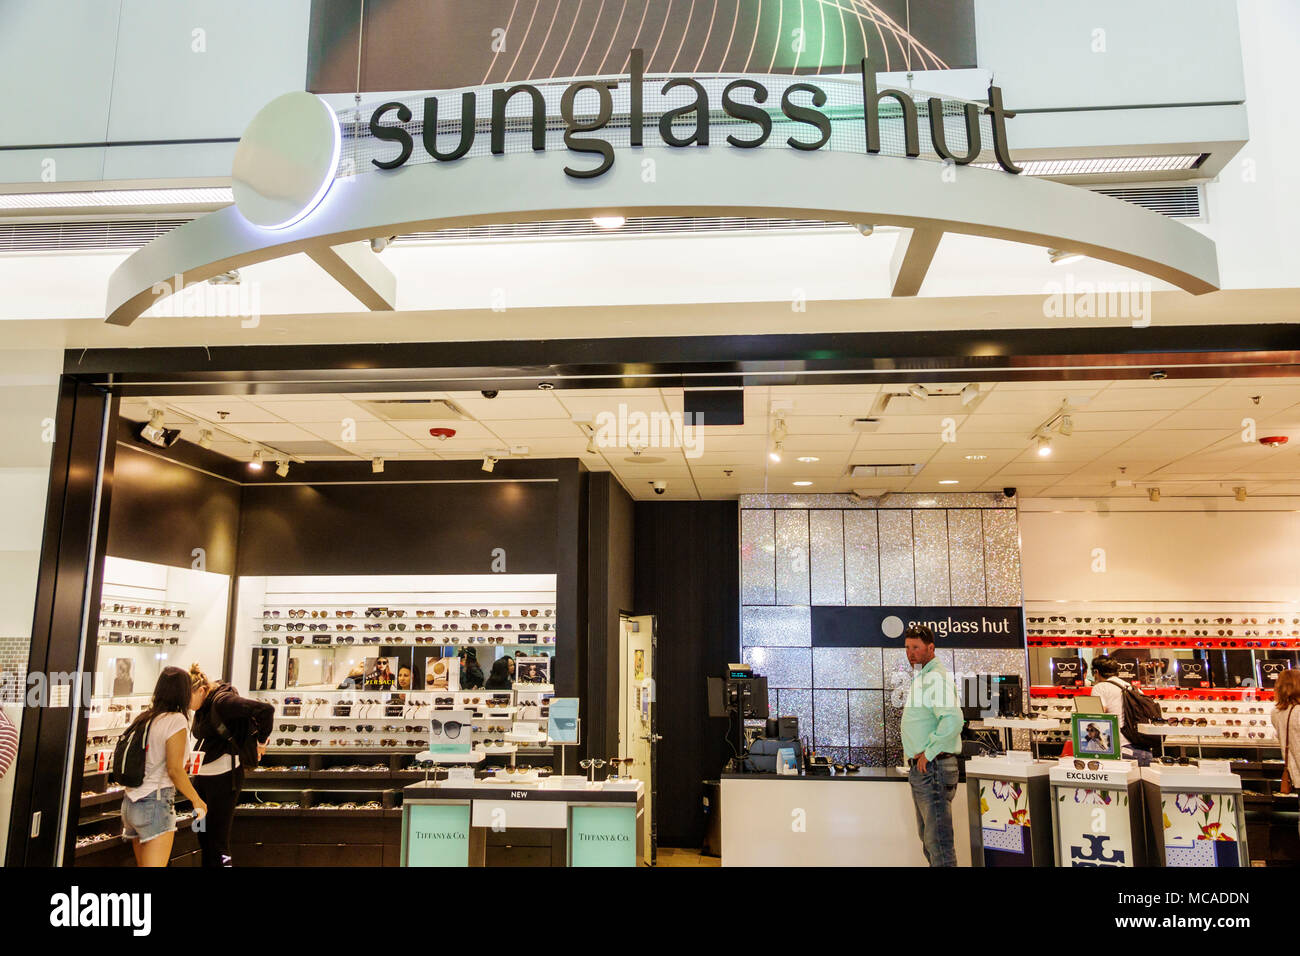 677966f97d0b9 Florida Miami Miami International Airport MIA store shopping Sunglass Hut  eyewear glasses man woman sign entrance